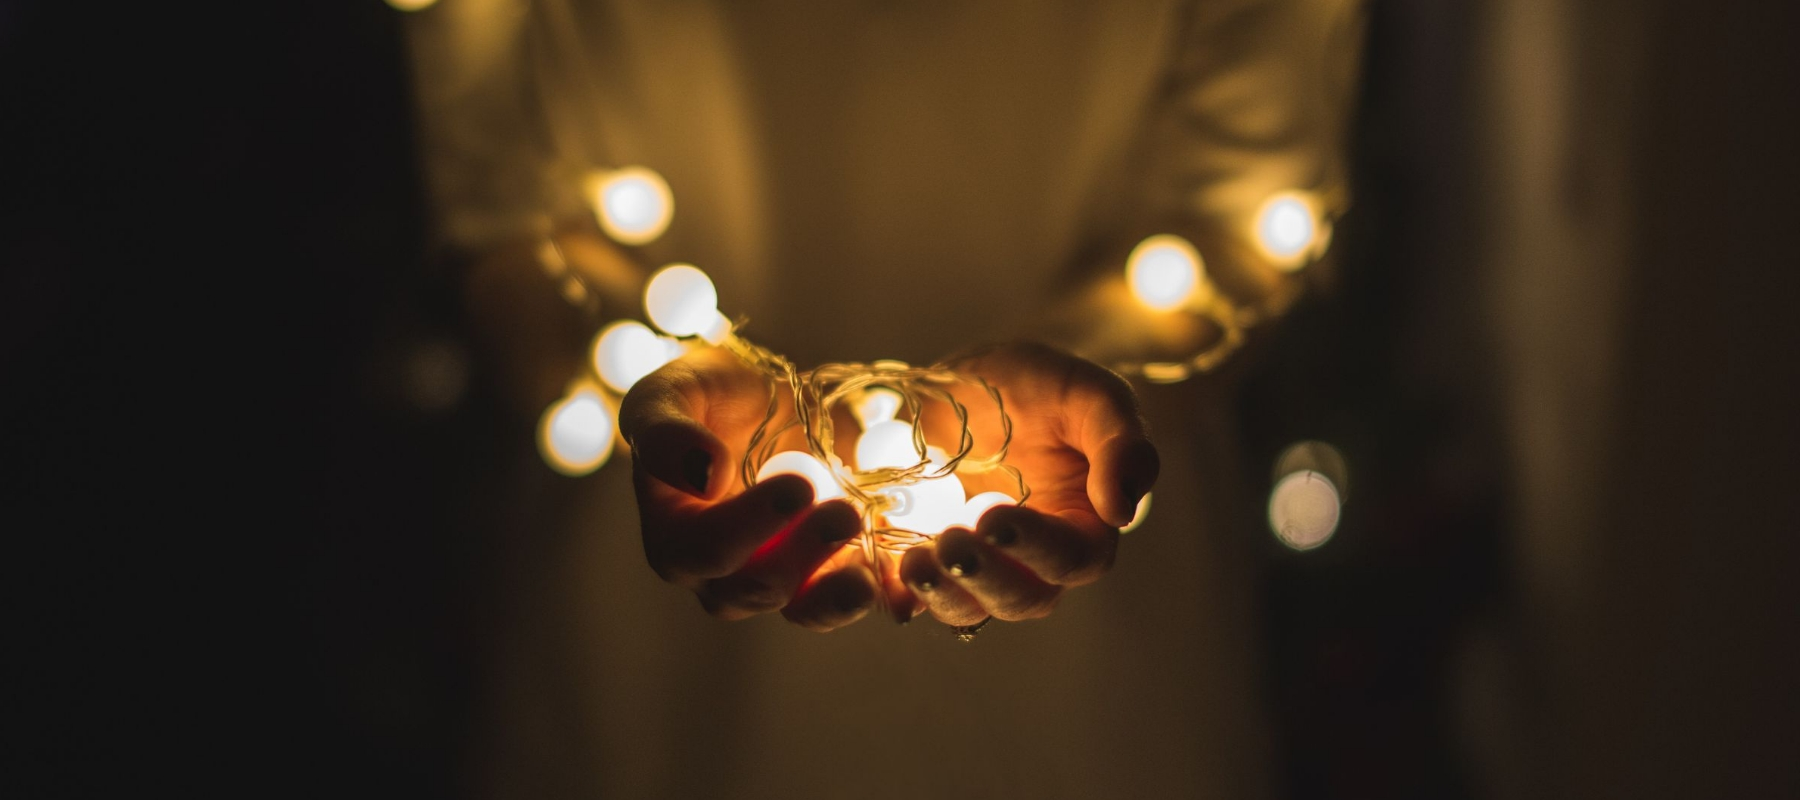 Heroic Fundraising Featured Image_Hands Glowing in Light